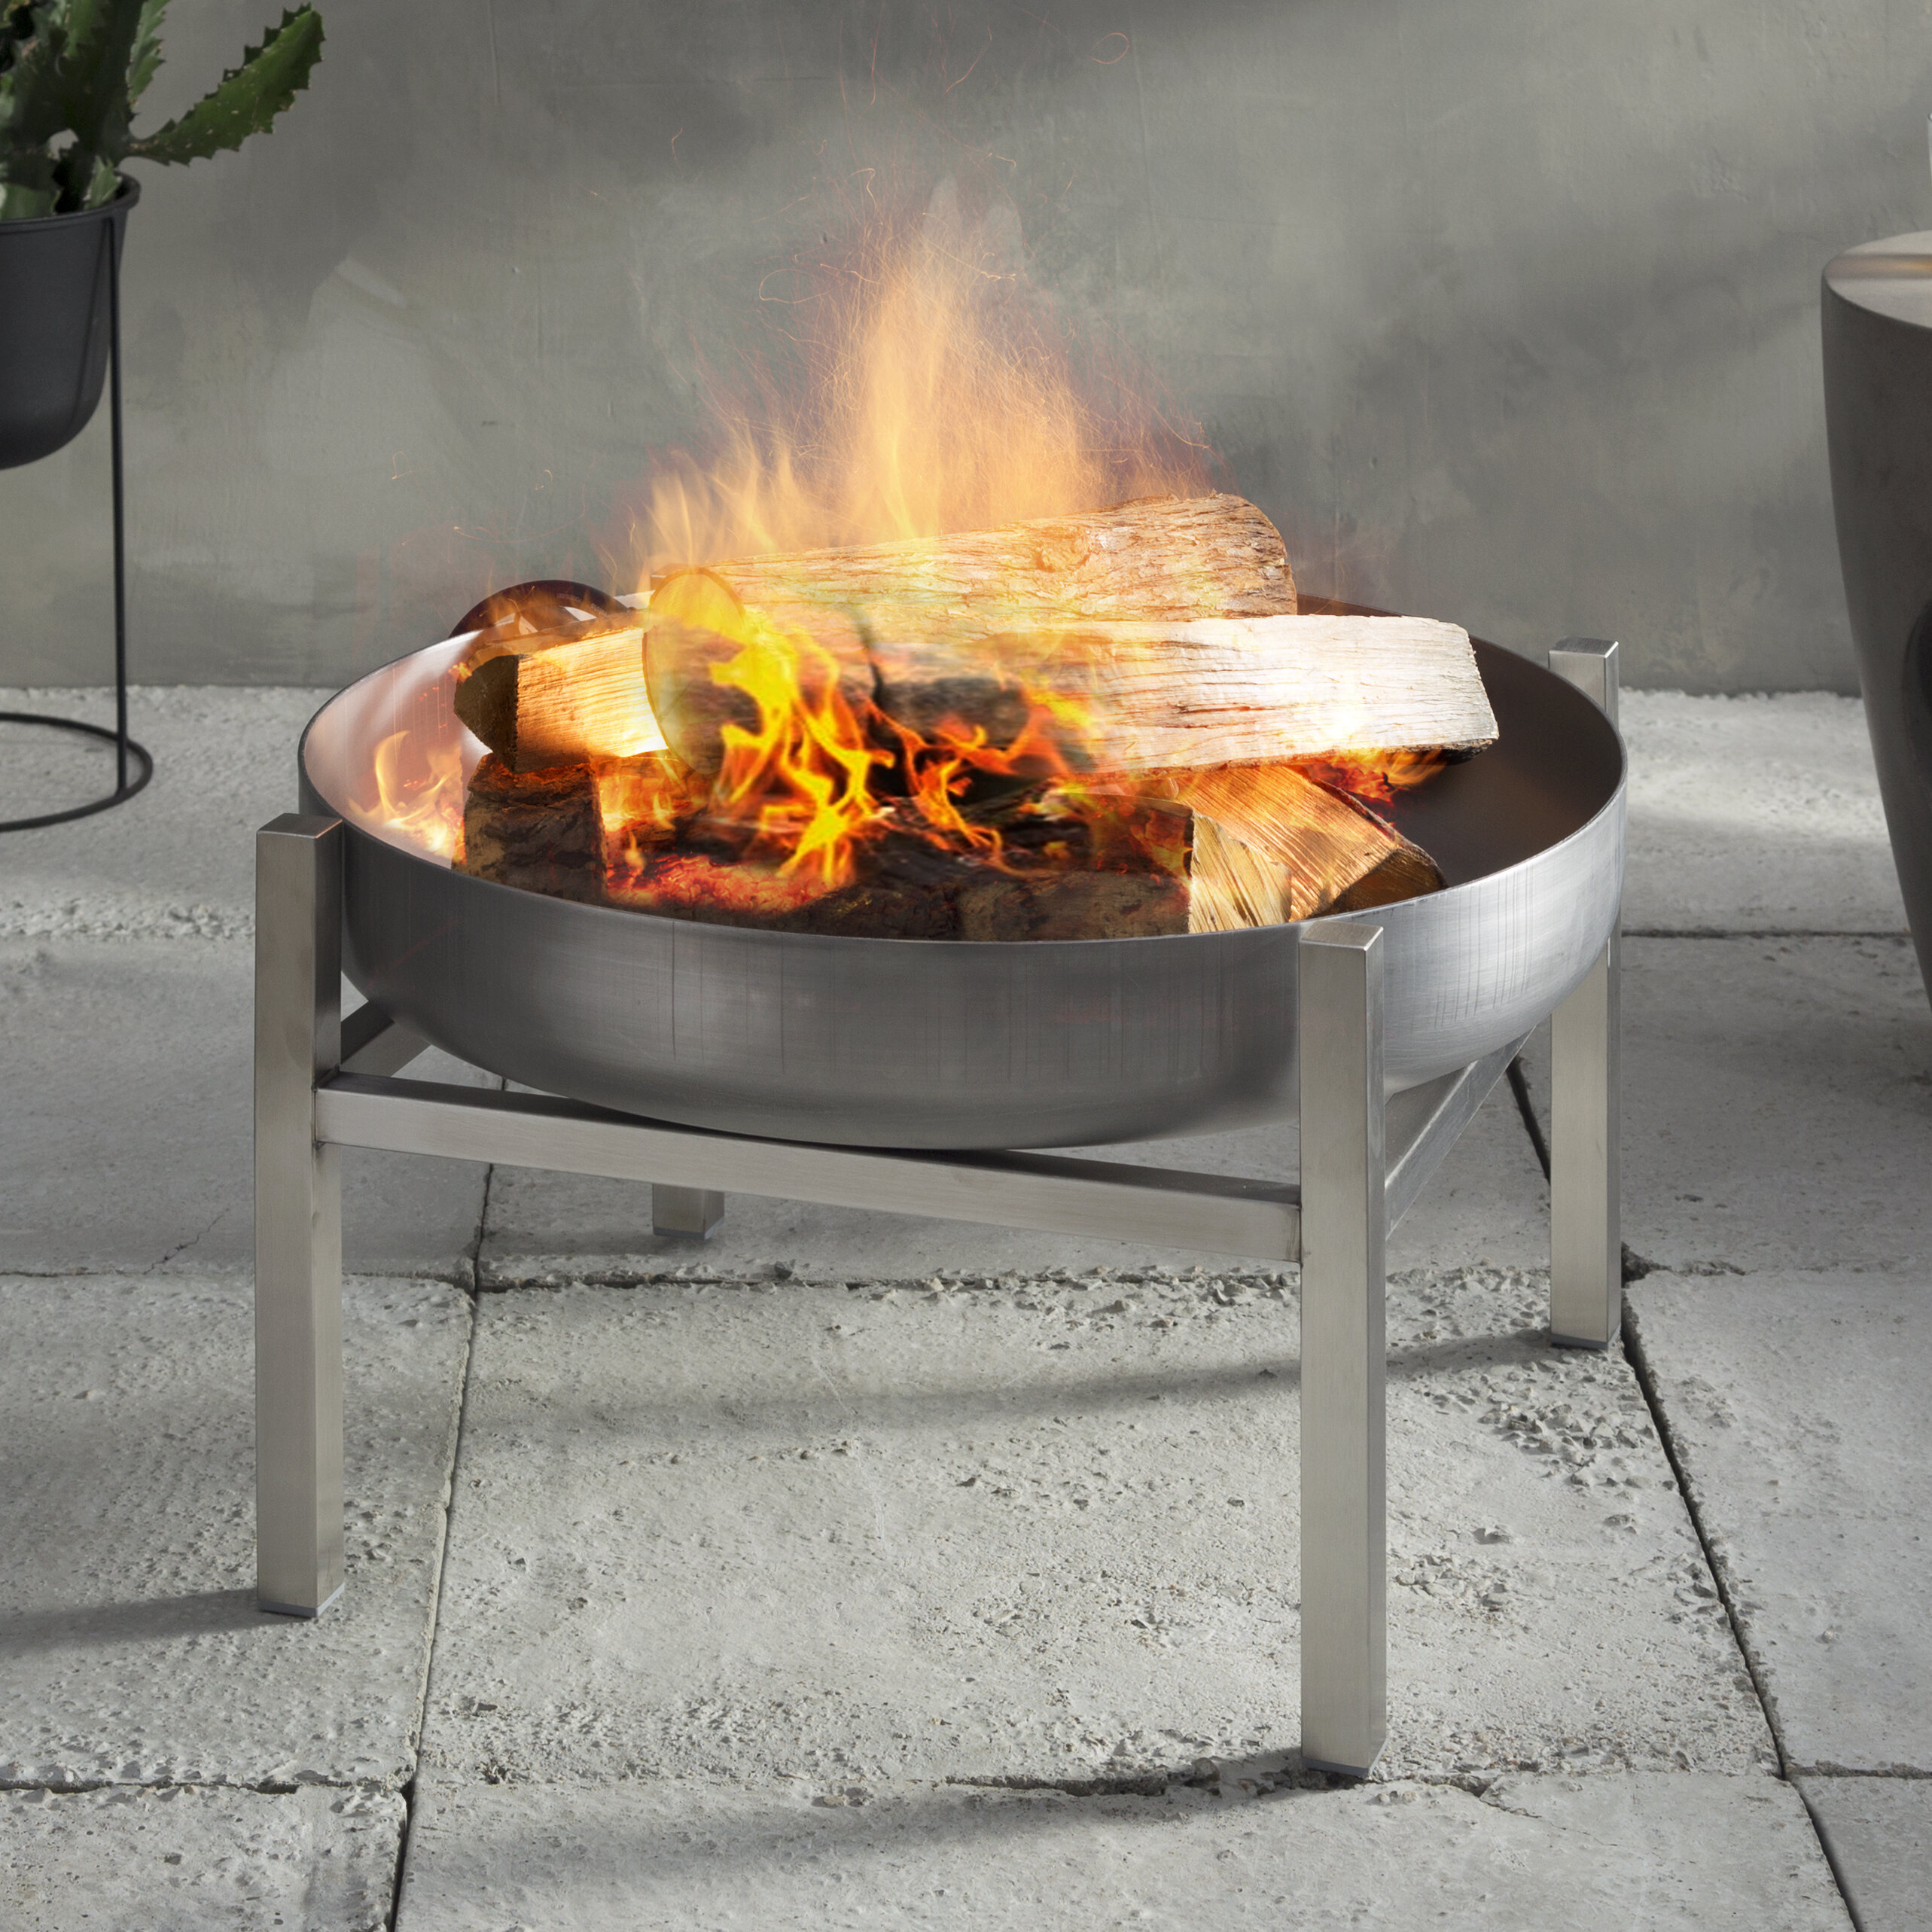 Curonian Parnidis Stainless Steel Wood Burning Fire Pit Reviews